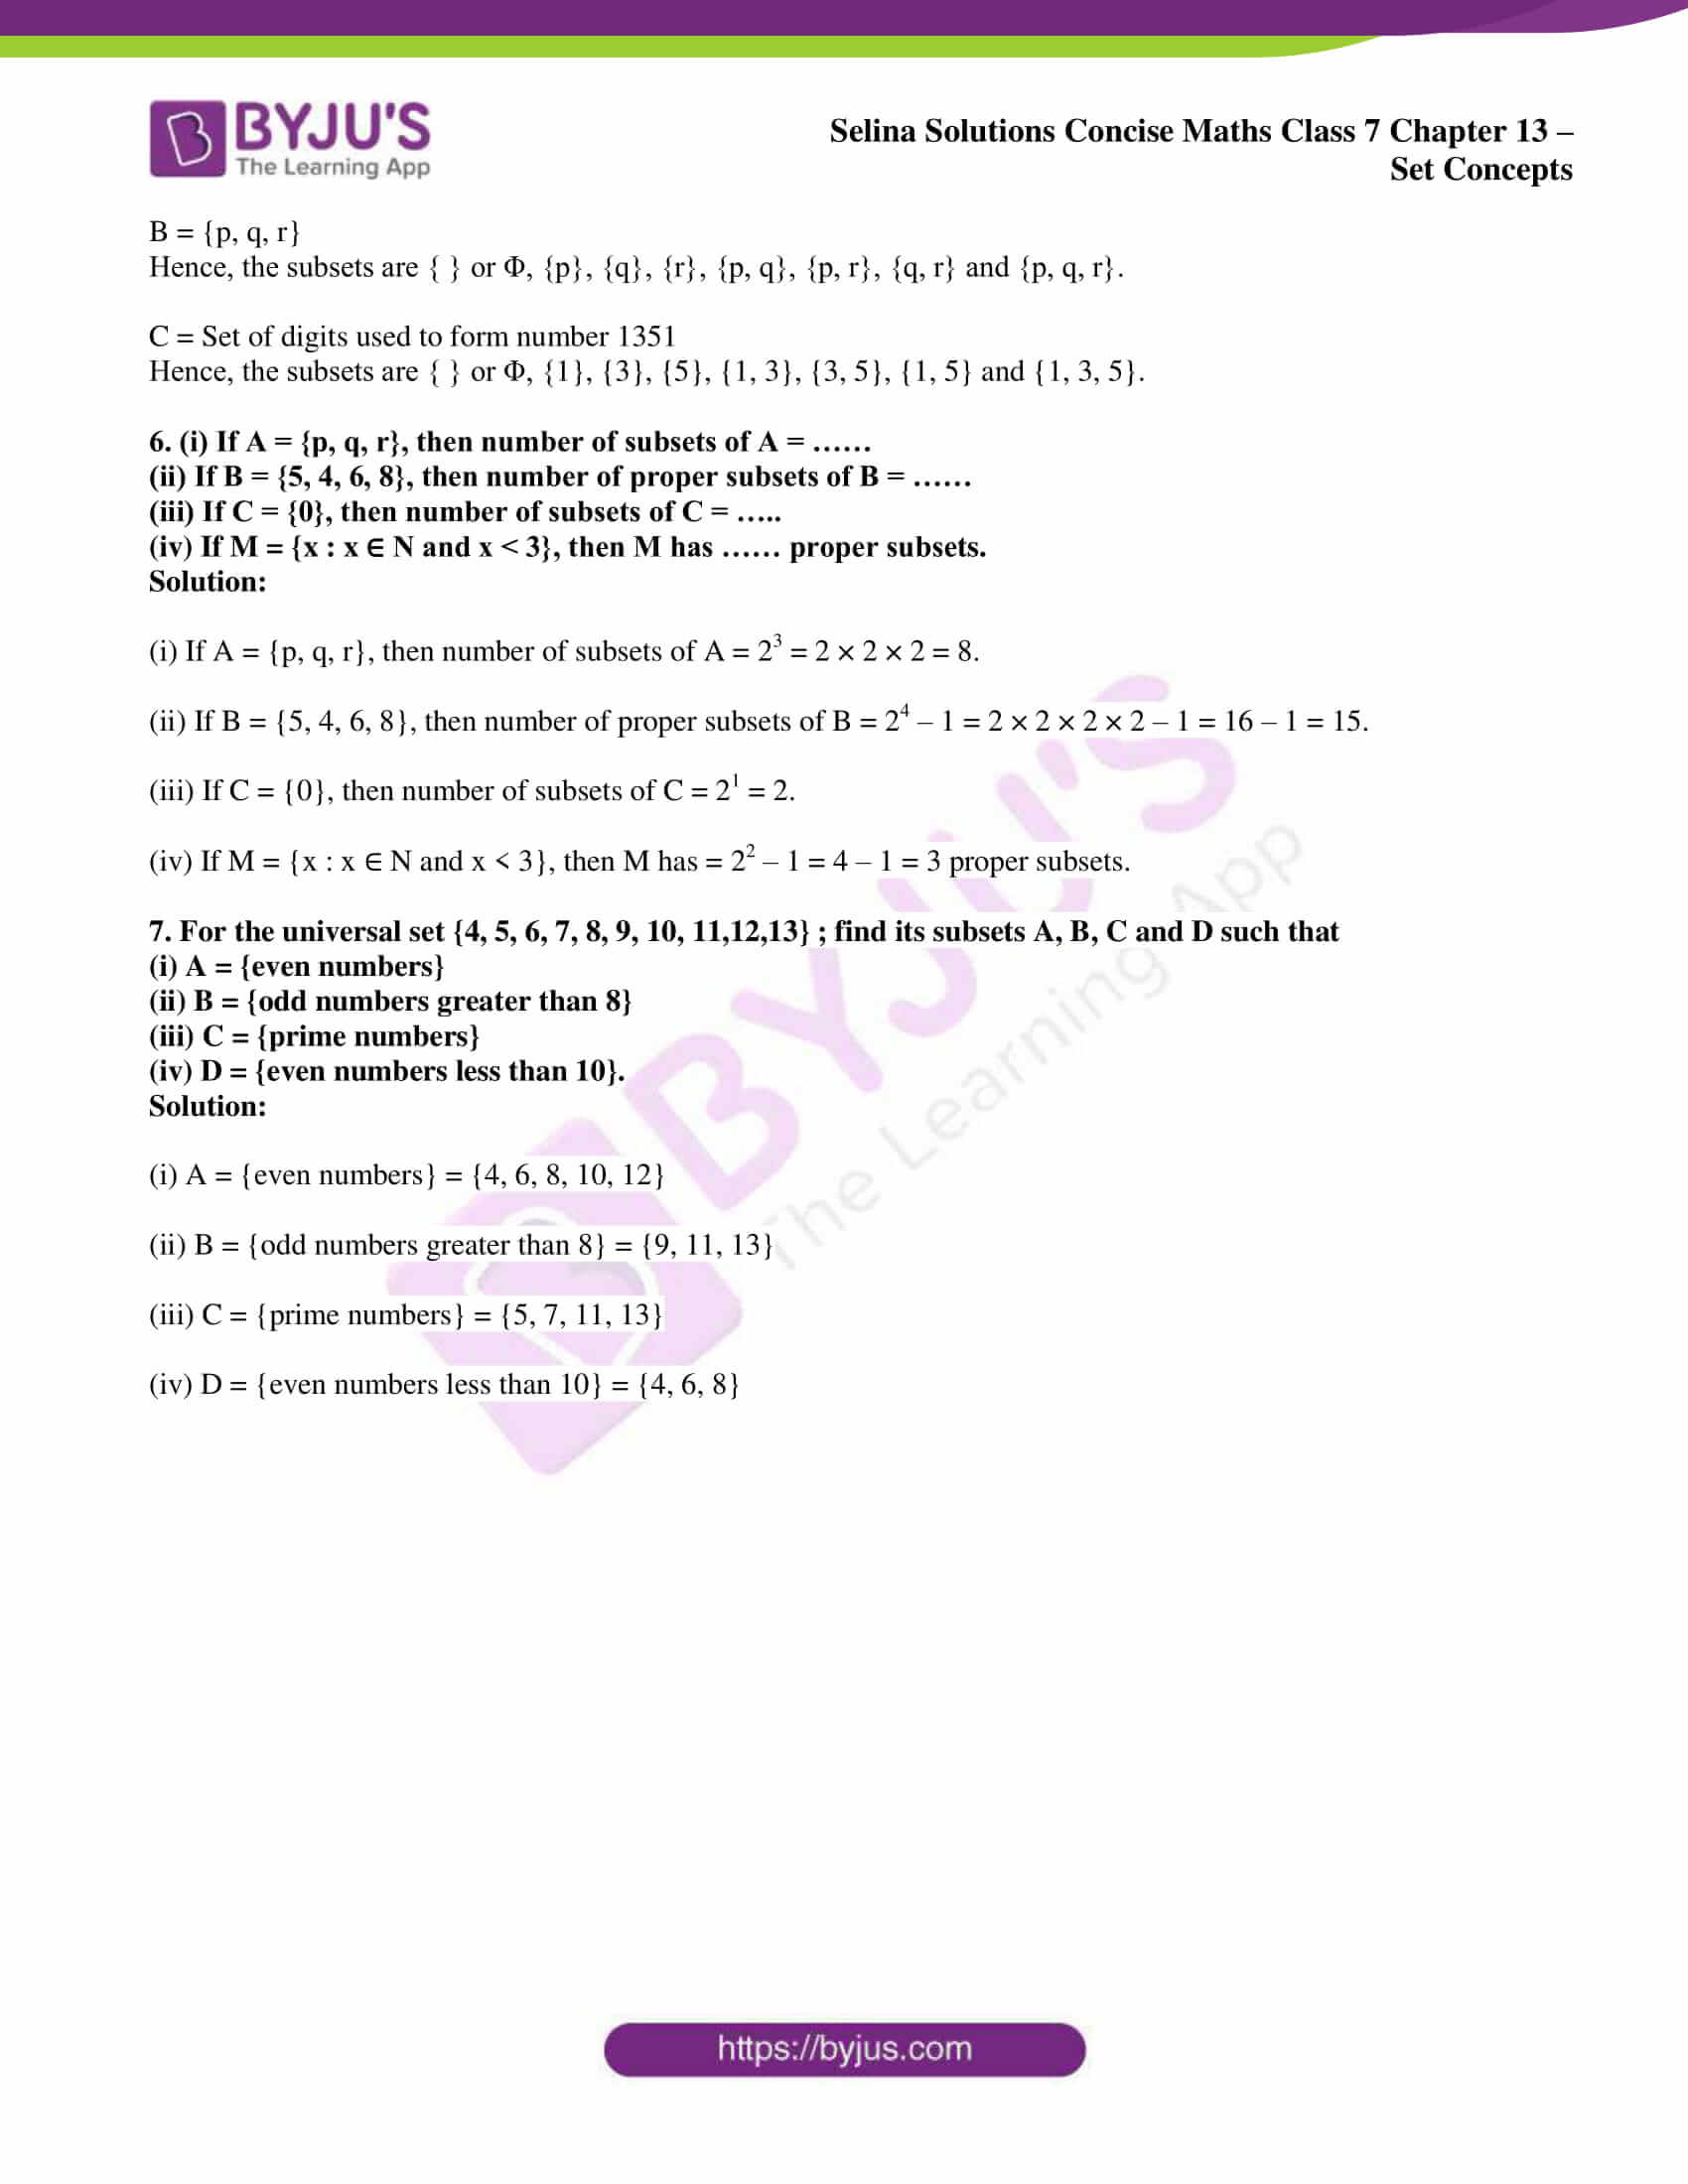 selina solution concise maths class 7 ch 13c 3